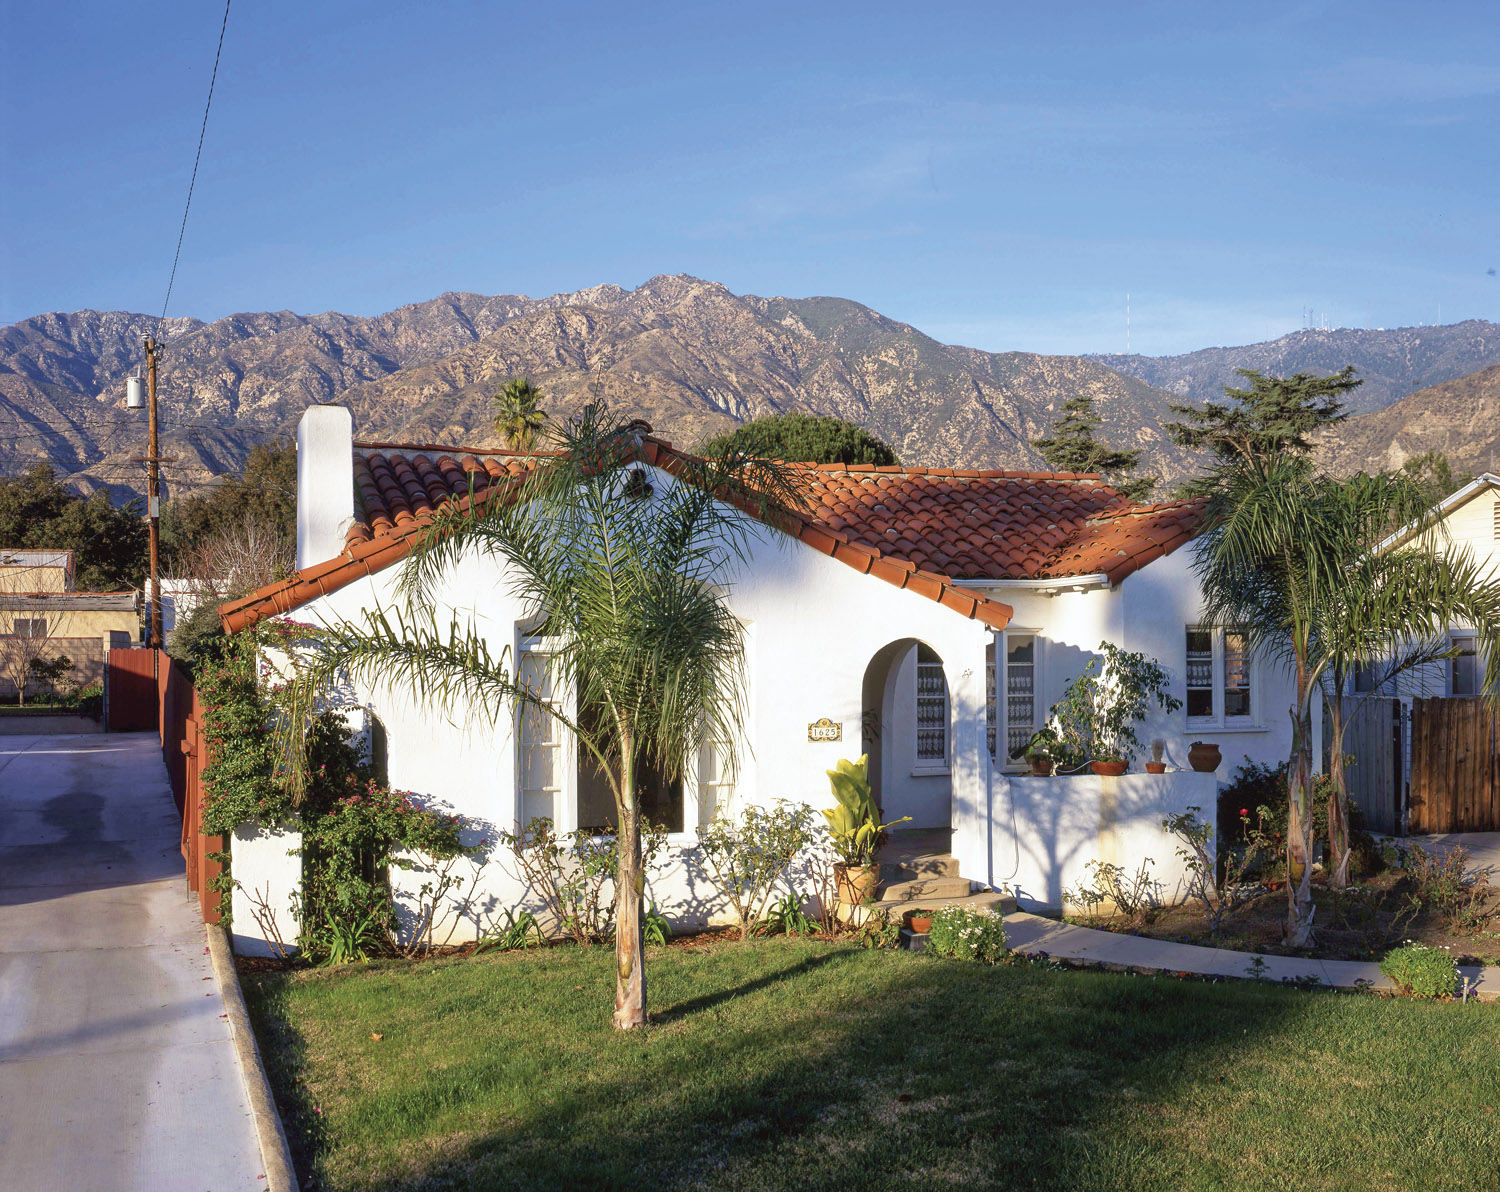 Spanish Colonial, white stucco house